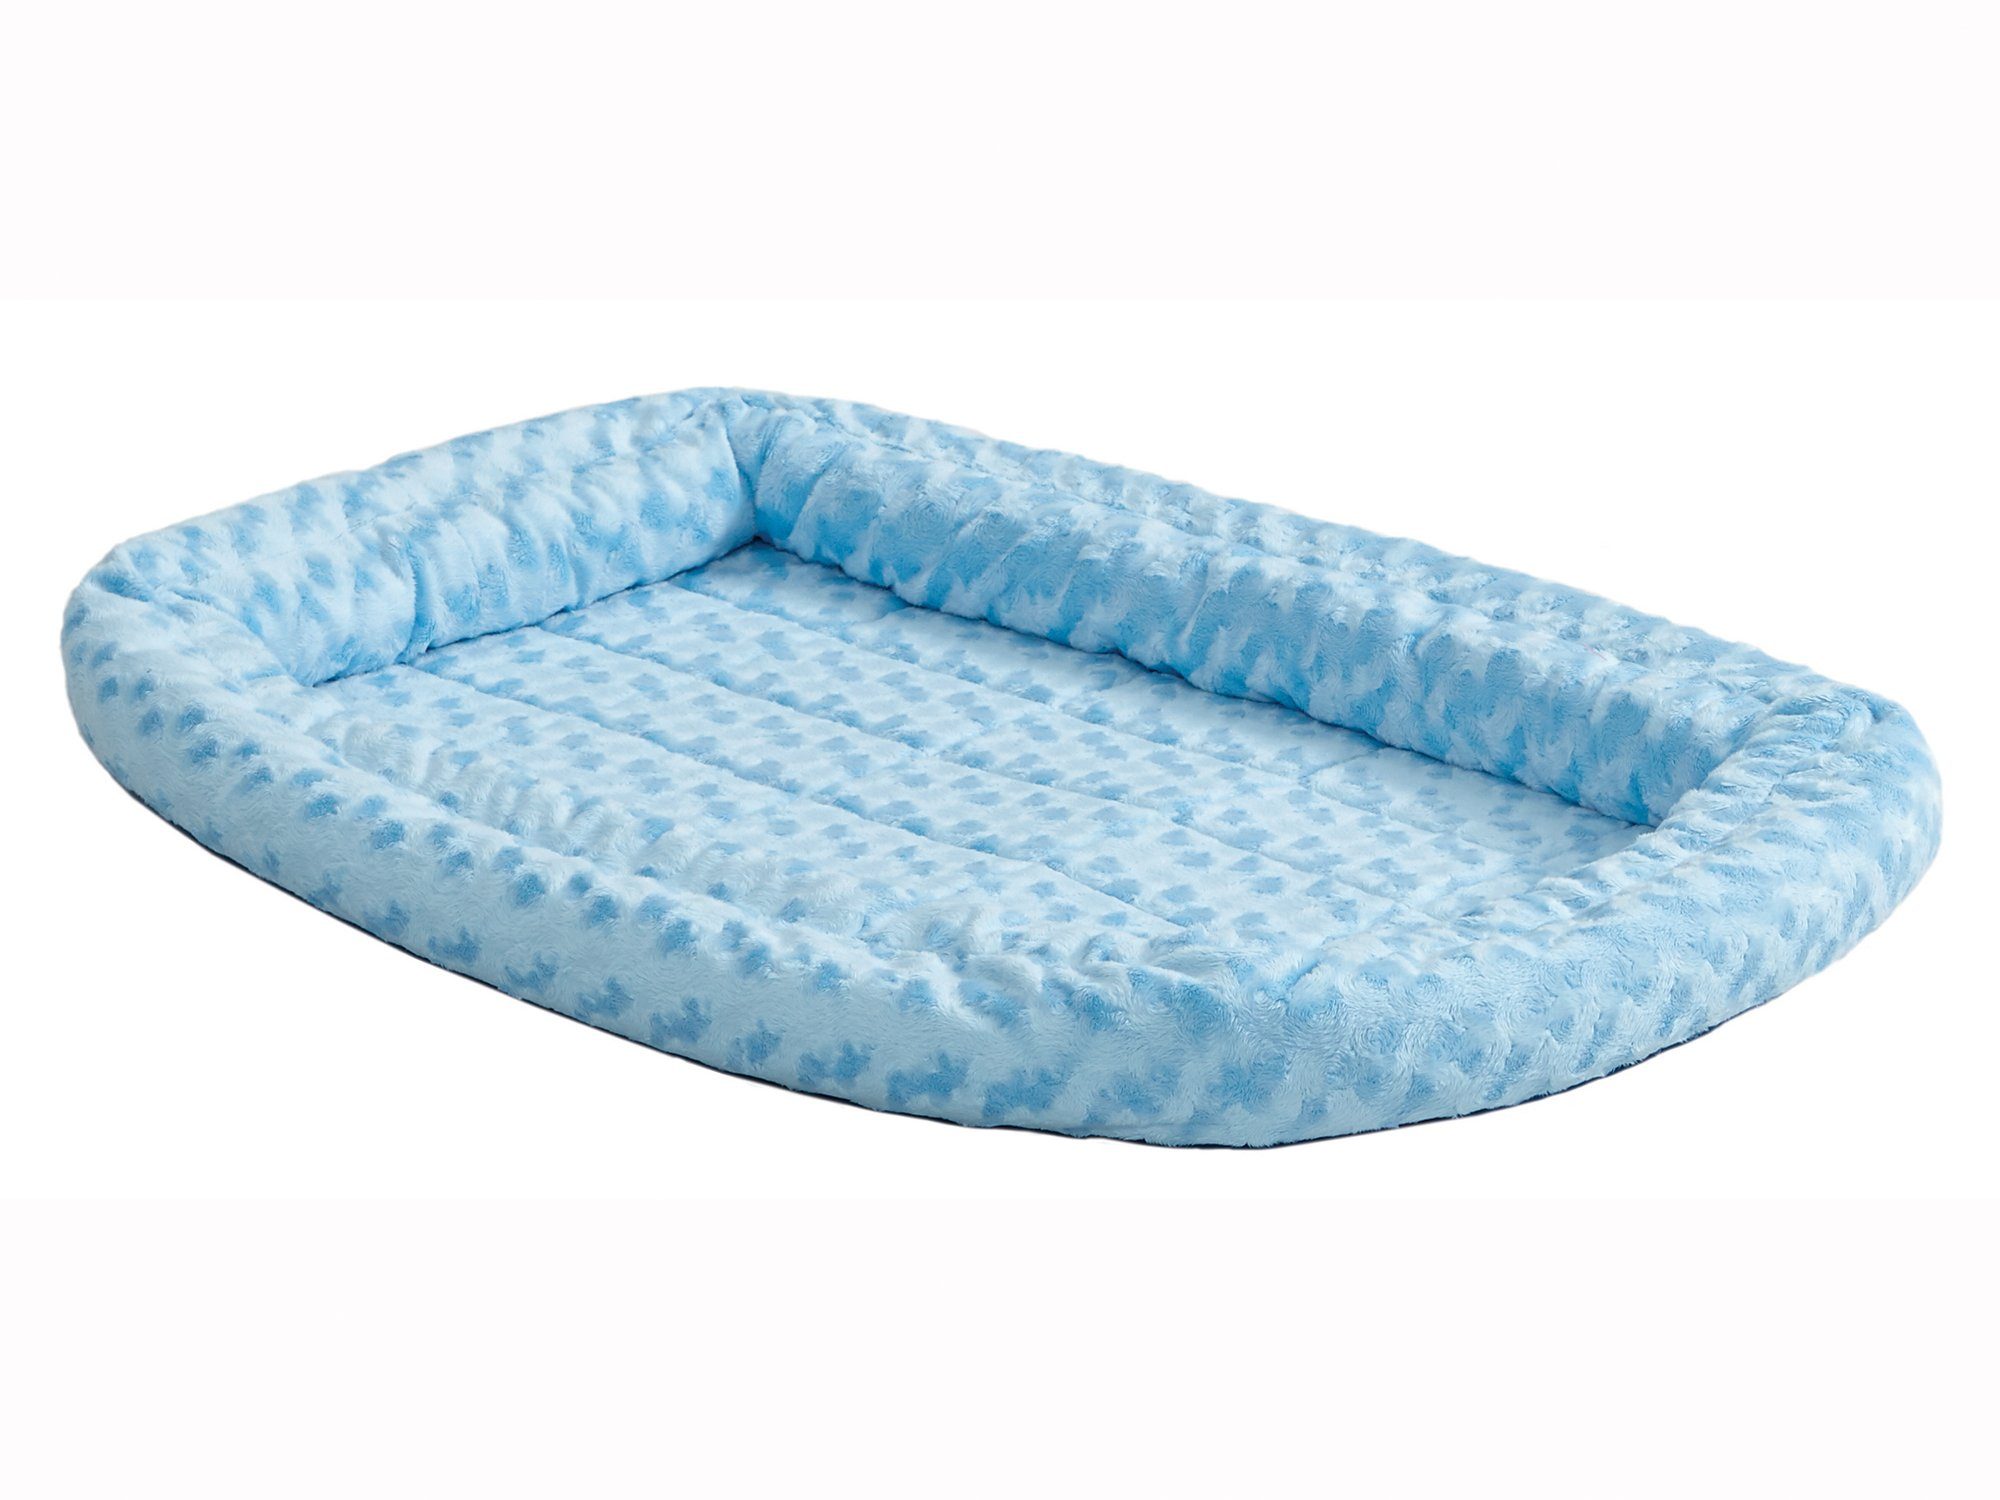 Double Bolster Pet Bed | Blue 18-Inch Dog Bed ideal for Toy Dog Breeds & fits 18-Inch Long Dog Crates